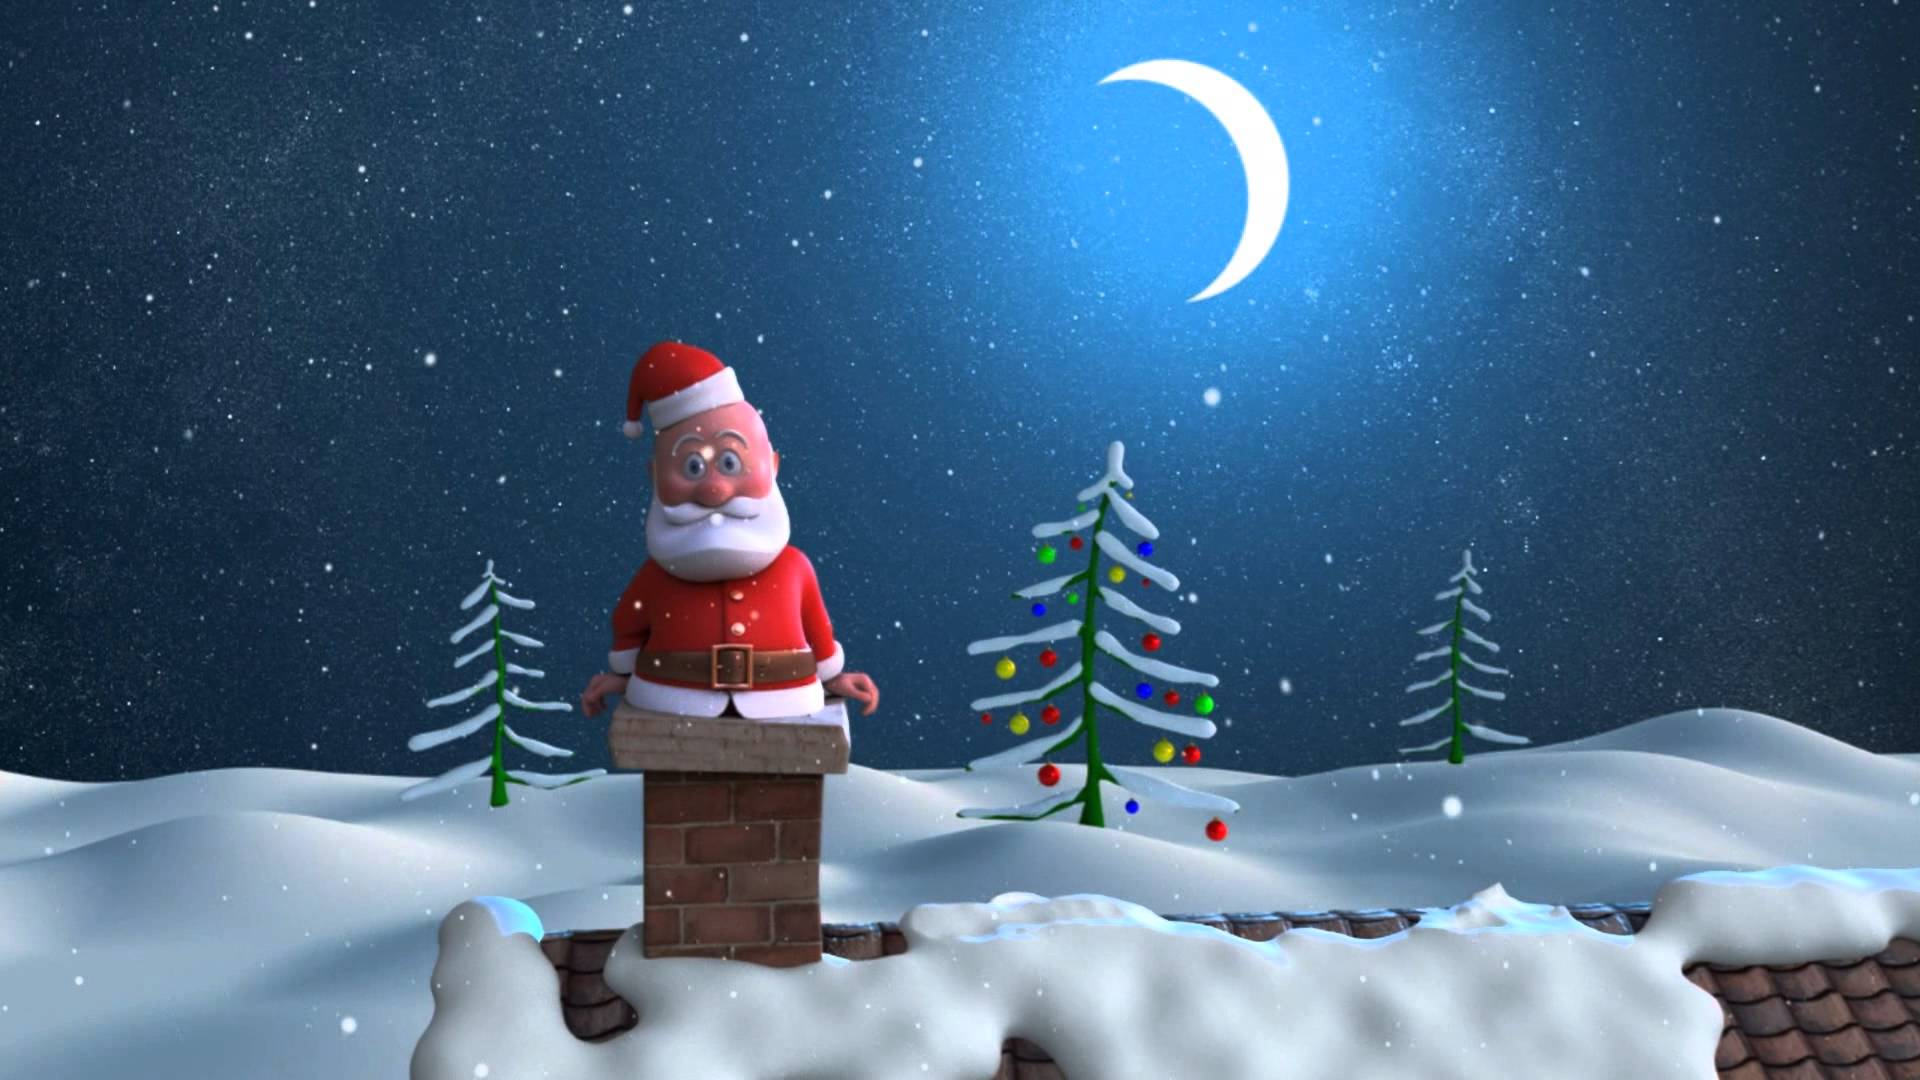 animated santa claus 8 cool wallpaper hivewallpaper.com